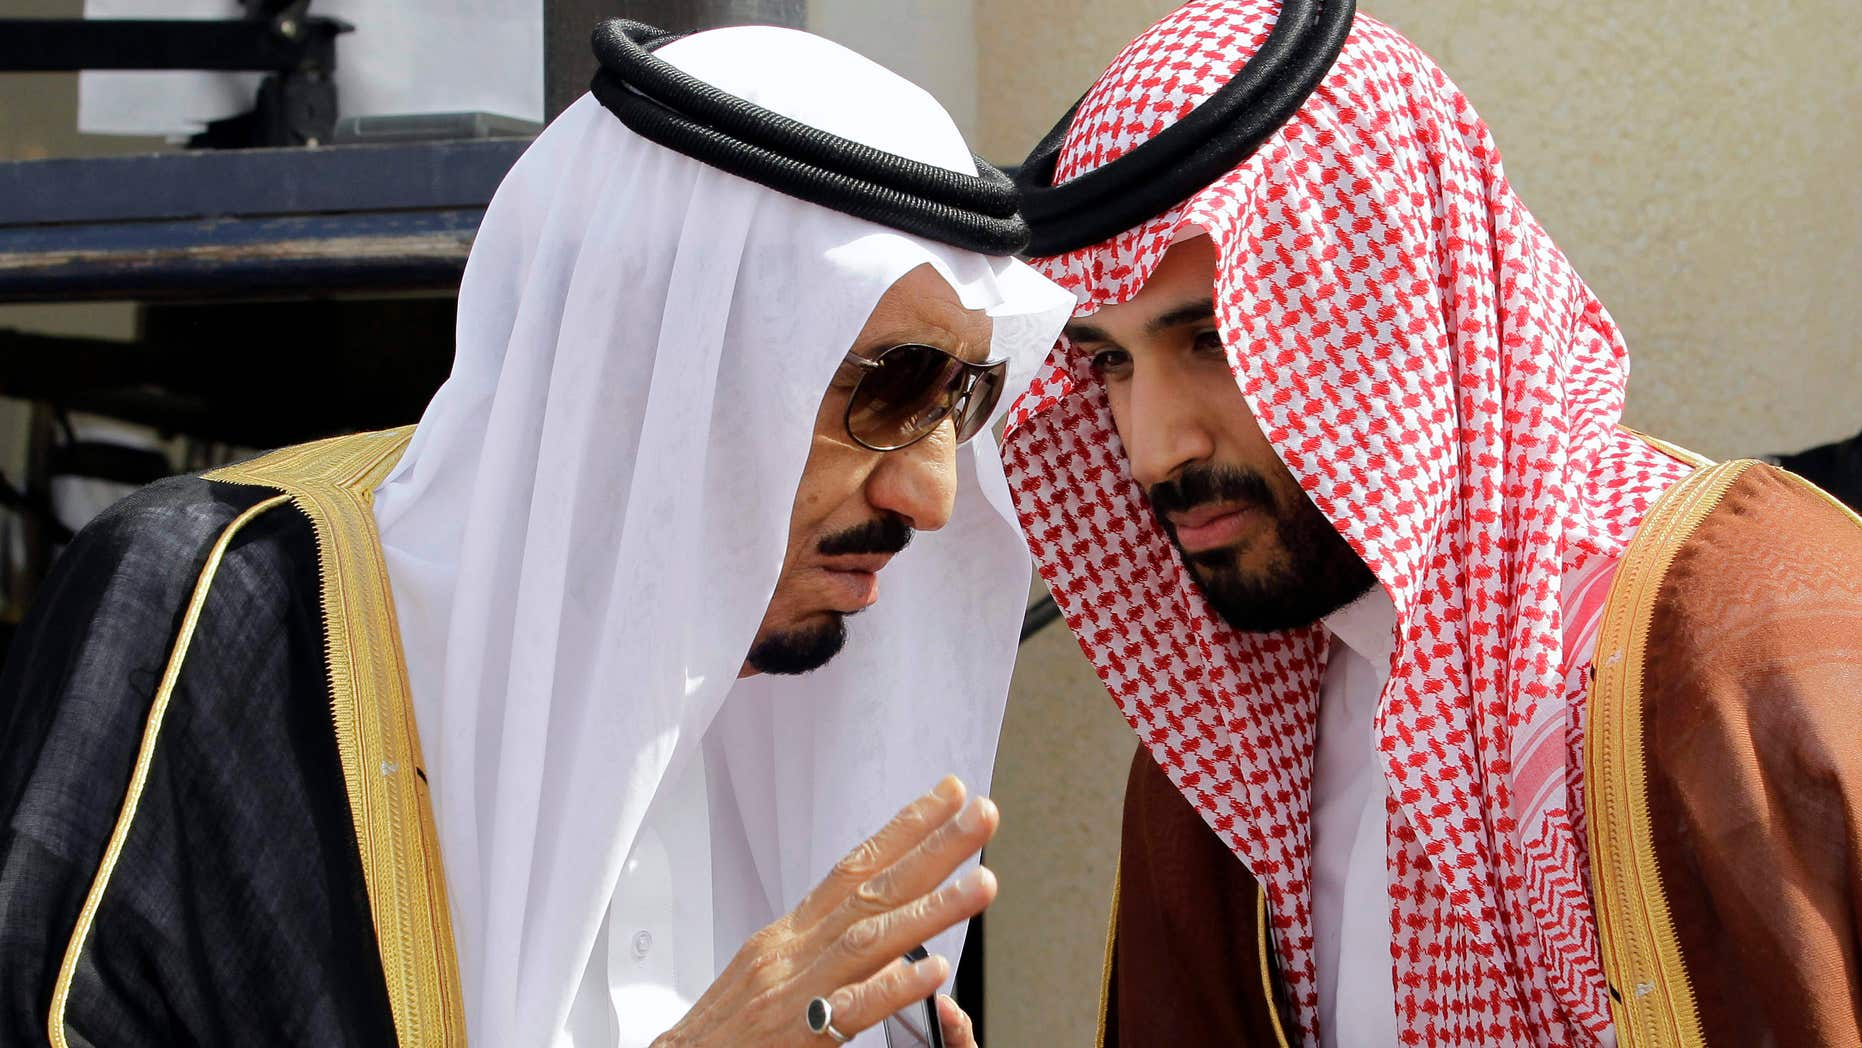 May 12, 2012:Tthen Crown Prince Salman bin Abdul-Aziz Al Saud, left, speaks with his son Prince Mohammed as they wait for Gulf Arab leaders ahead of the opening of Gulf Cooperation Council, also known as GCC summit, in Riyadh, Saudi Arabia.